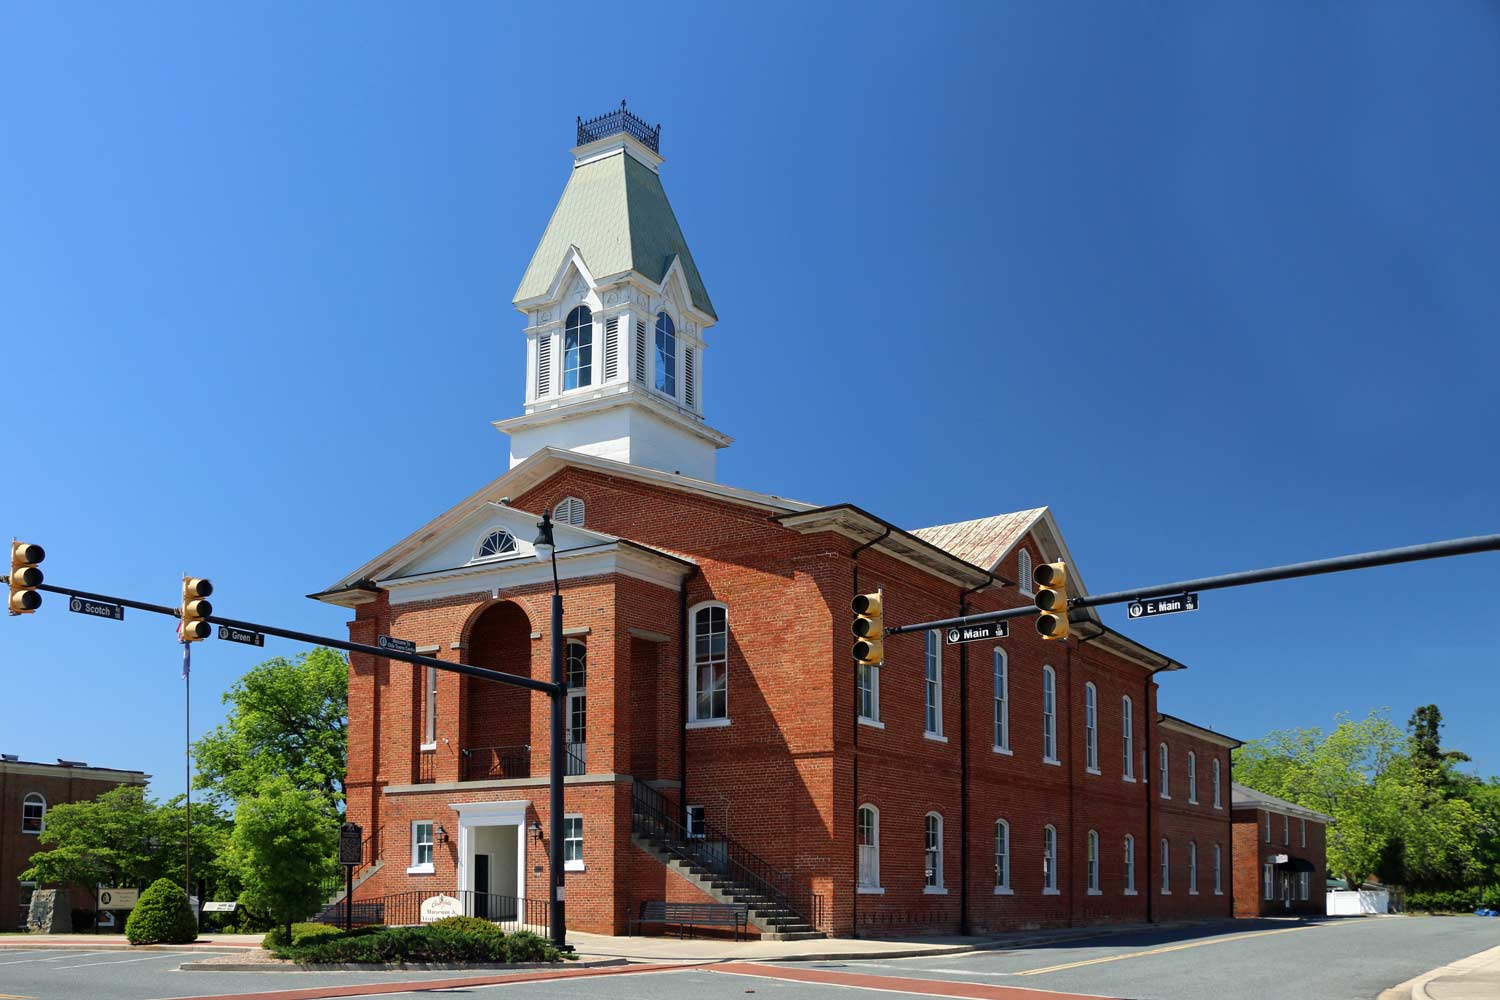 Chesterfield Courthouse